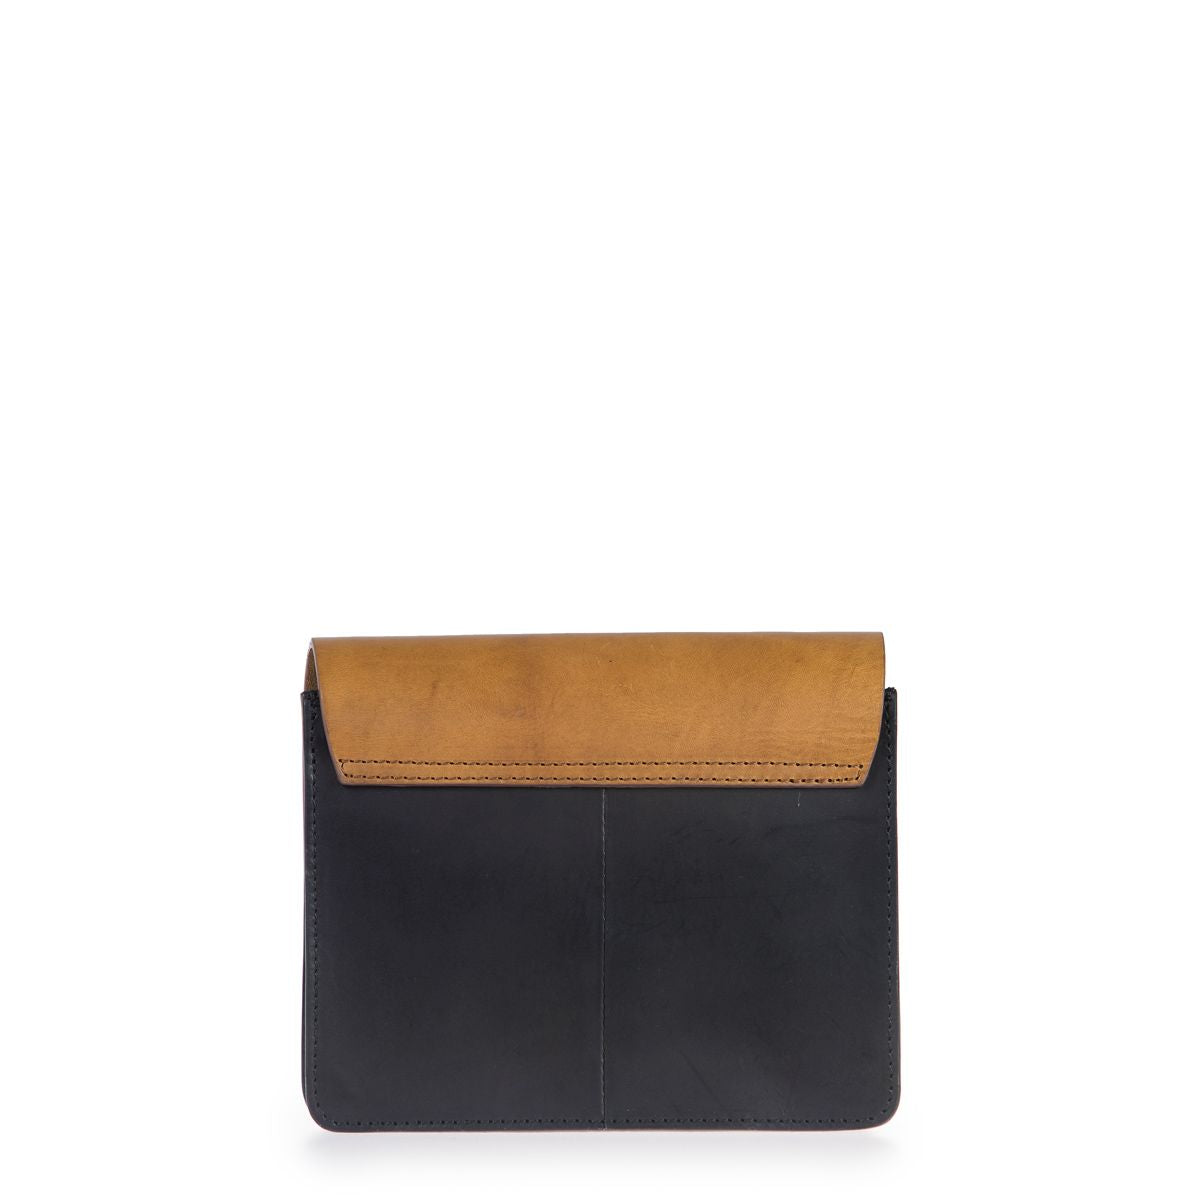 O My Bag // Audrey mini bag - Black / Cognac